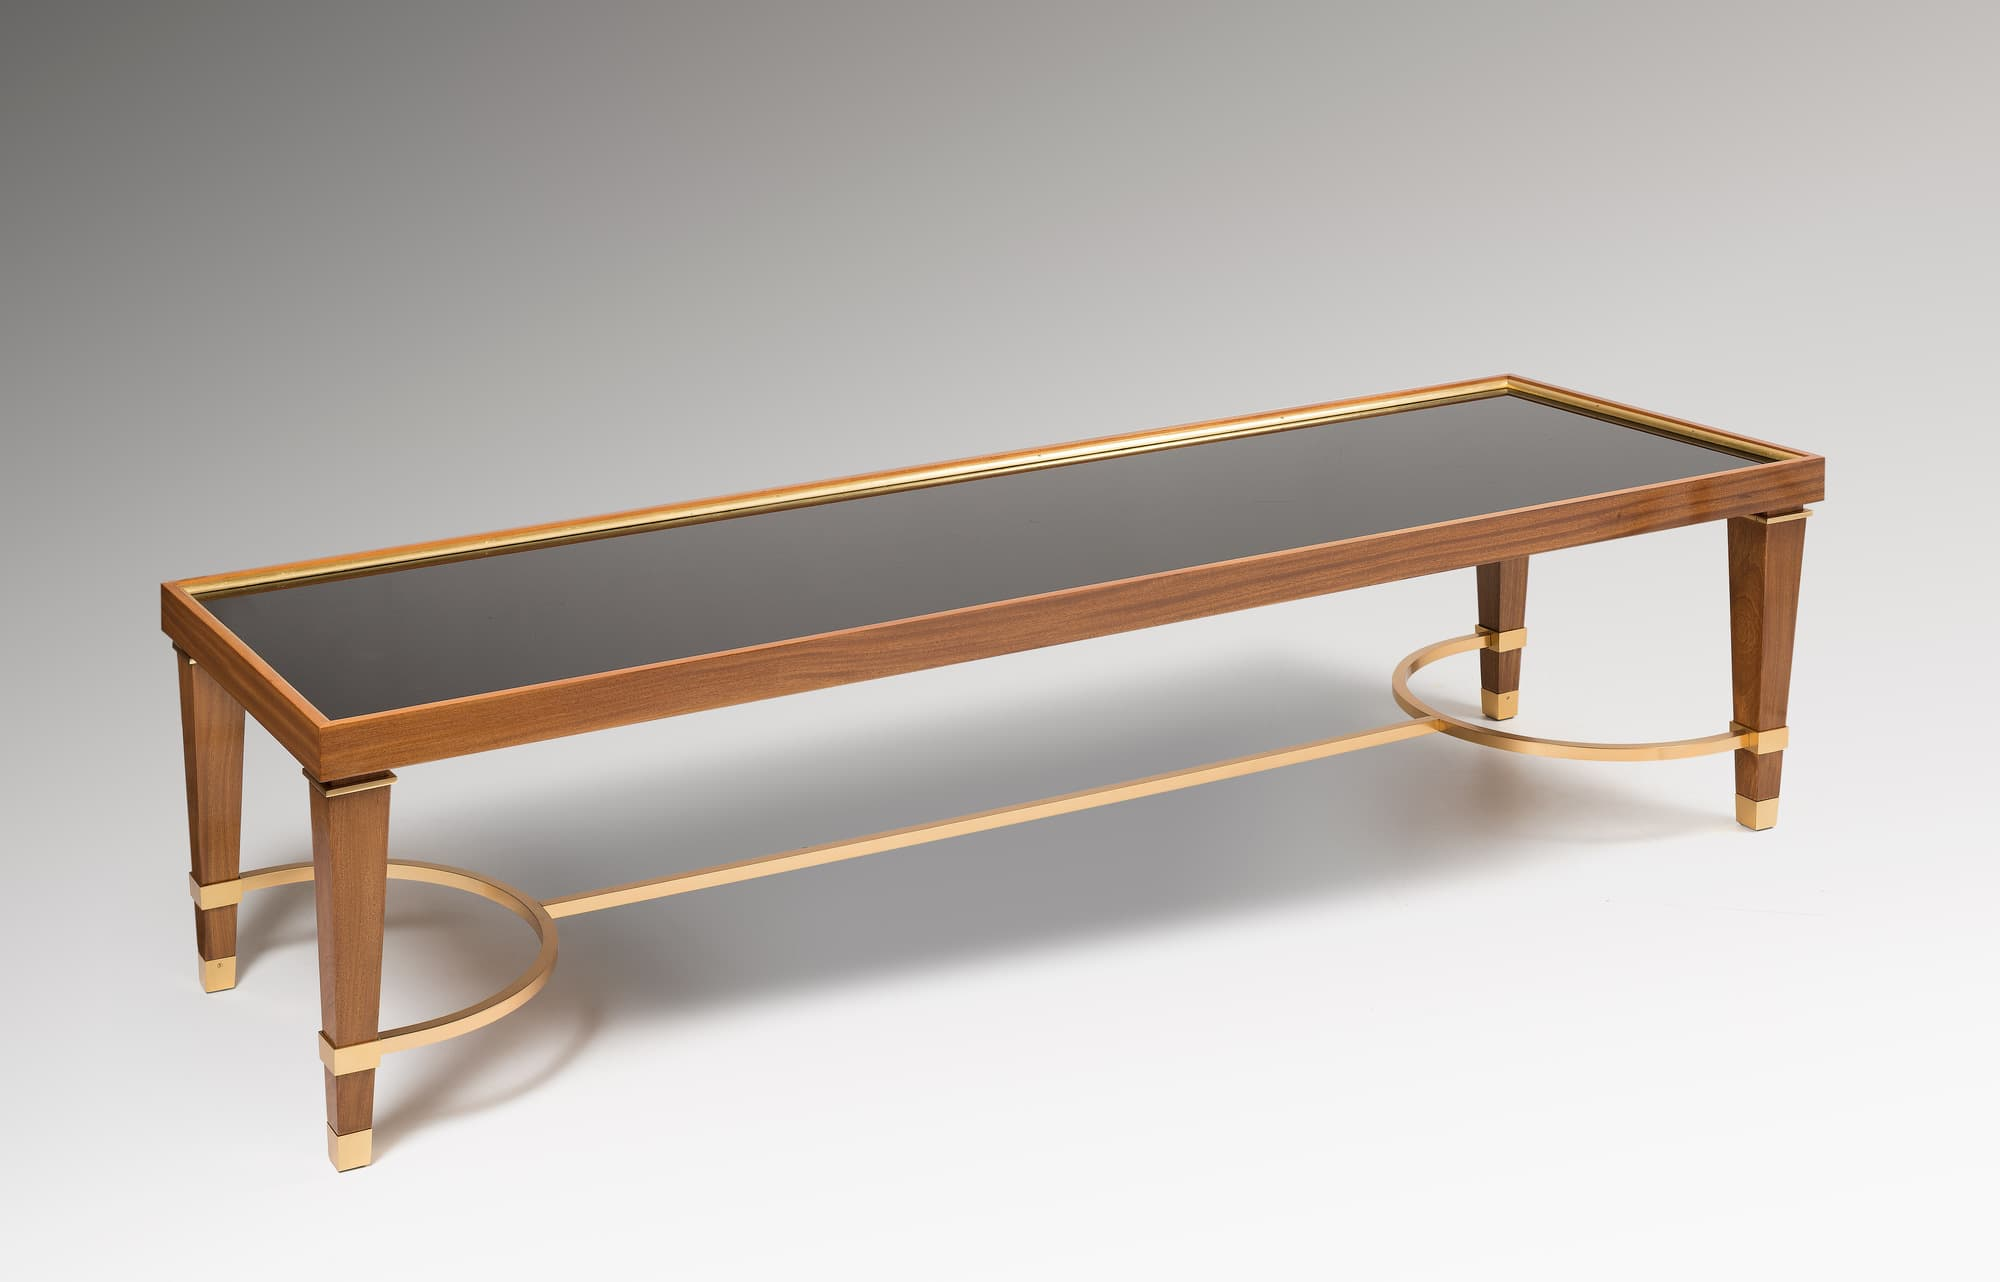 Exceptional coffee table created for the Palais des Consuls in Rouen, vue 01